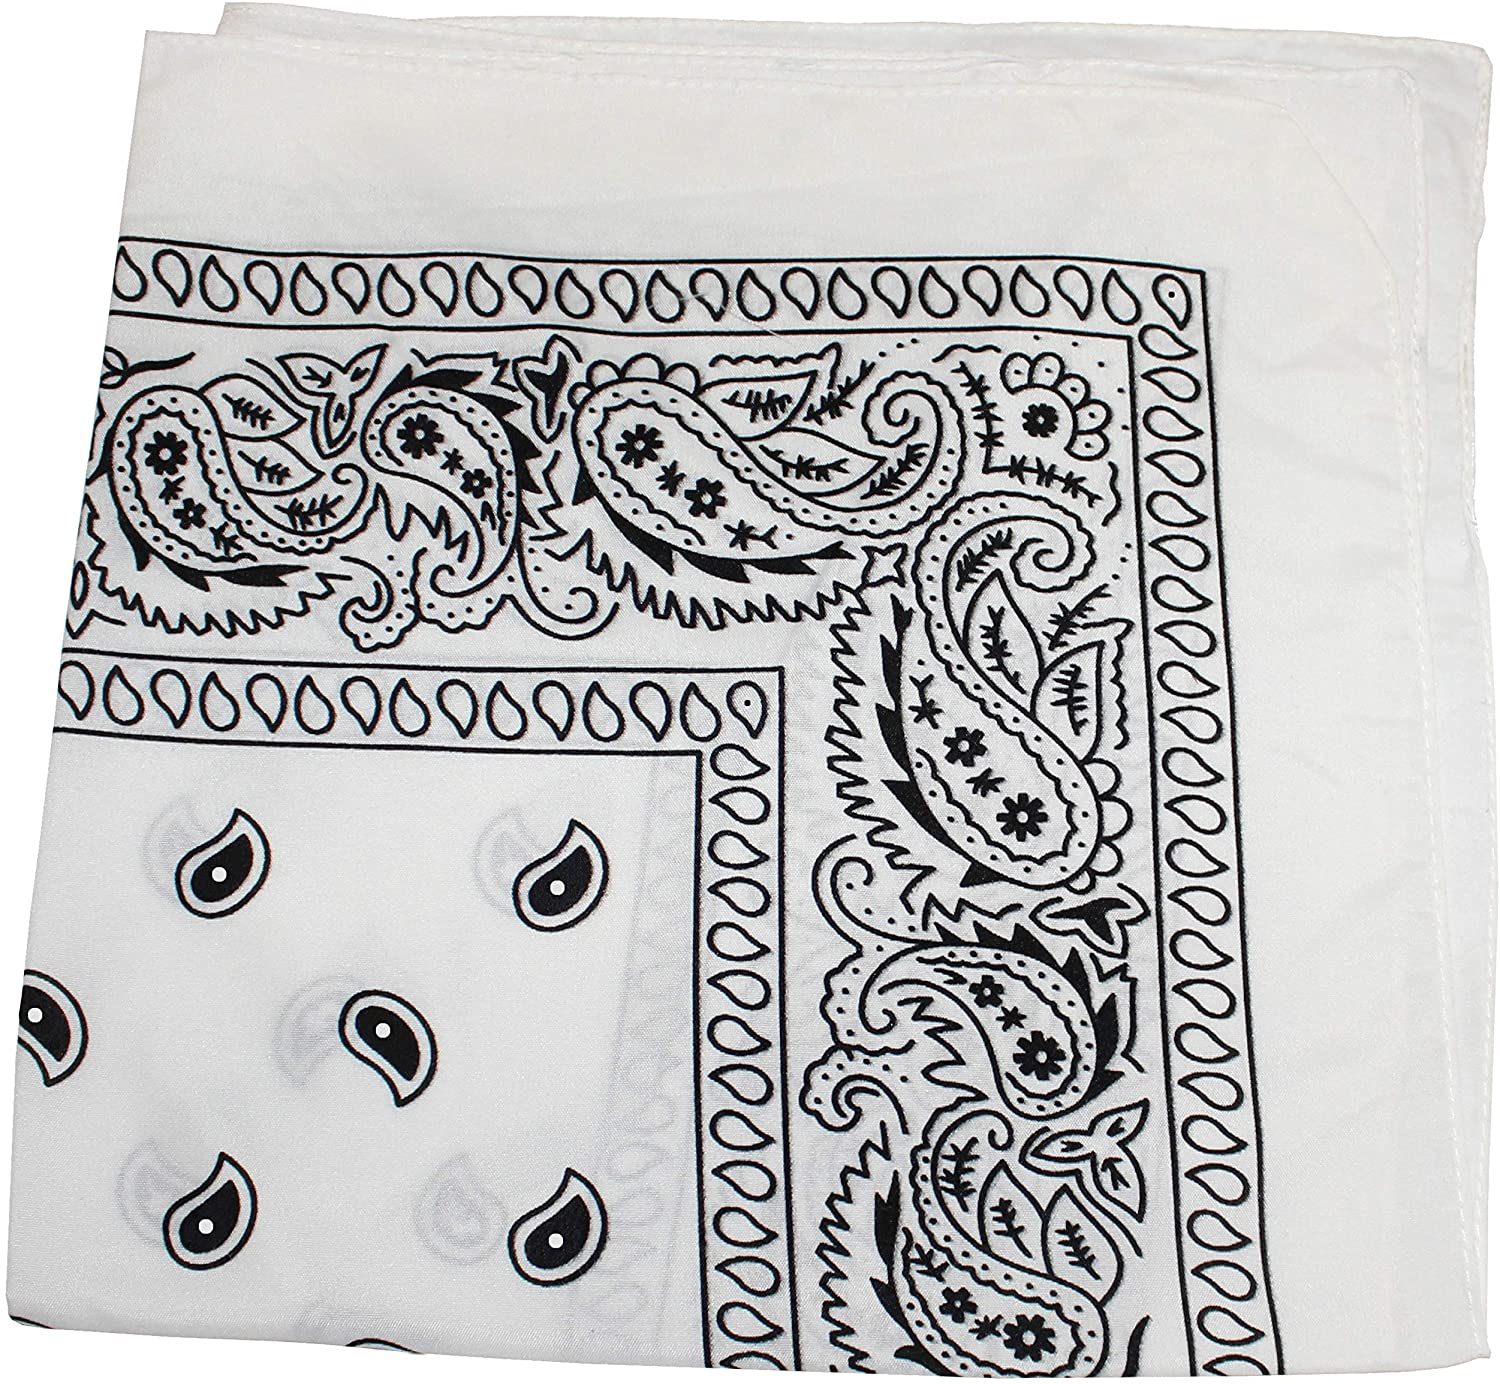 4 Pack X Large Paisley 100% Premium Cotton Double Sided Printed Bandana - 27 x 27 inches